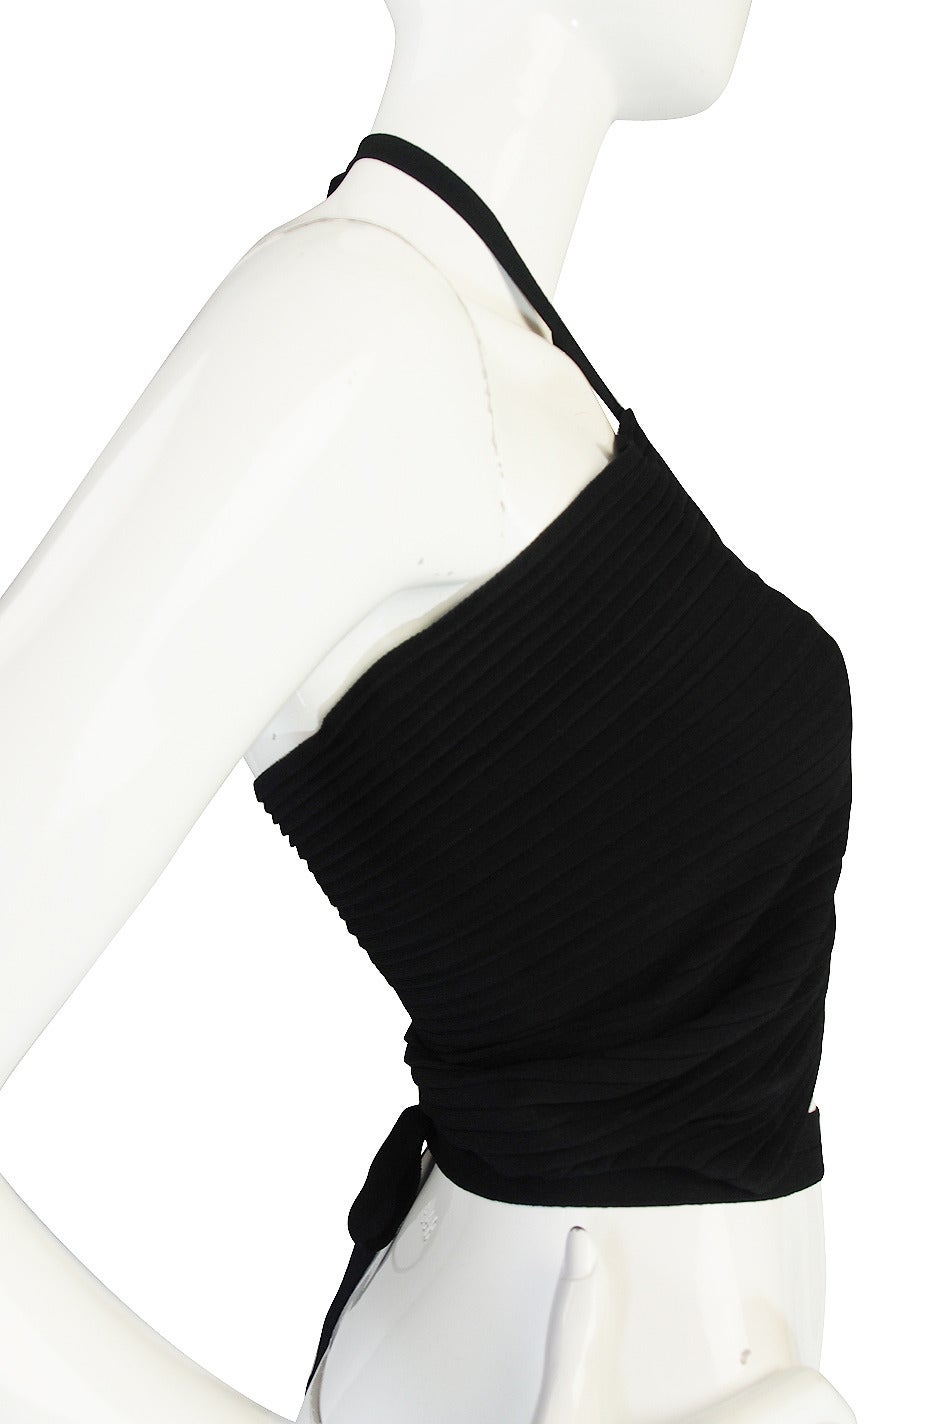 circa 1996 Tom Ford for Gucci Black Halter Knit Top 5